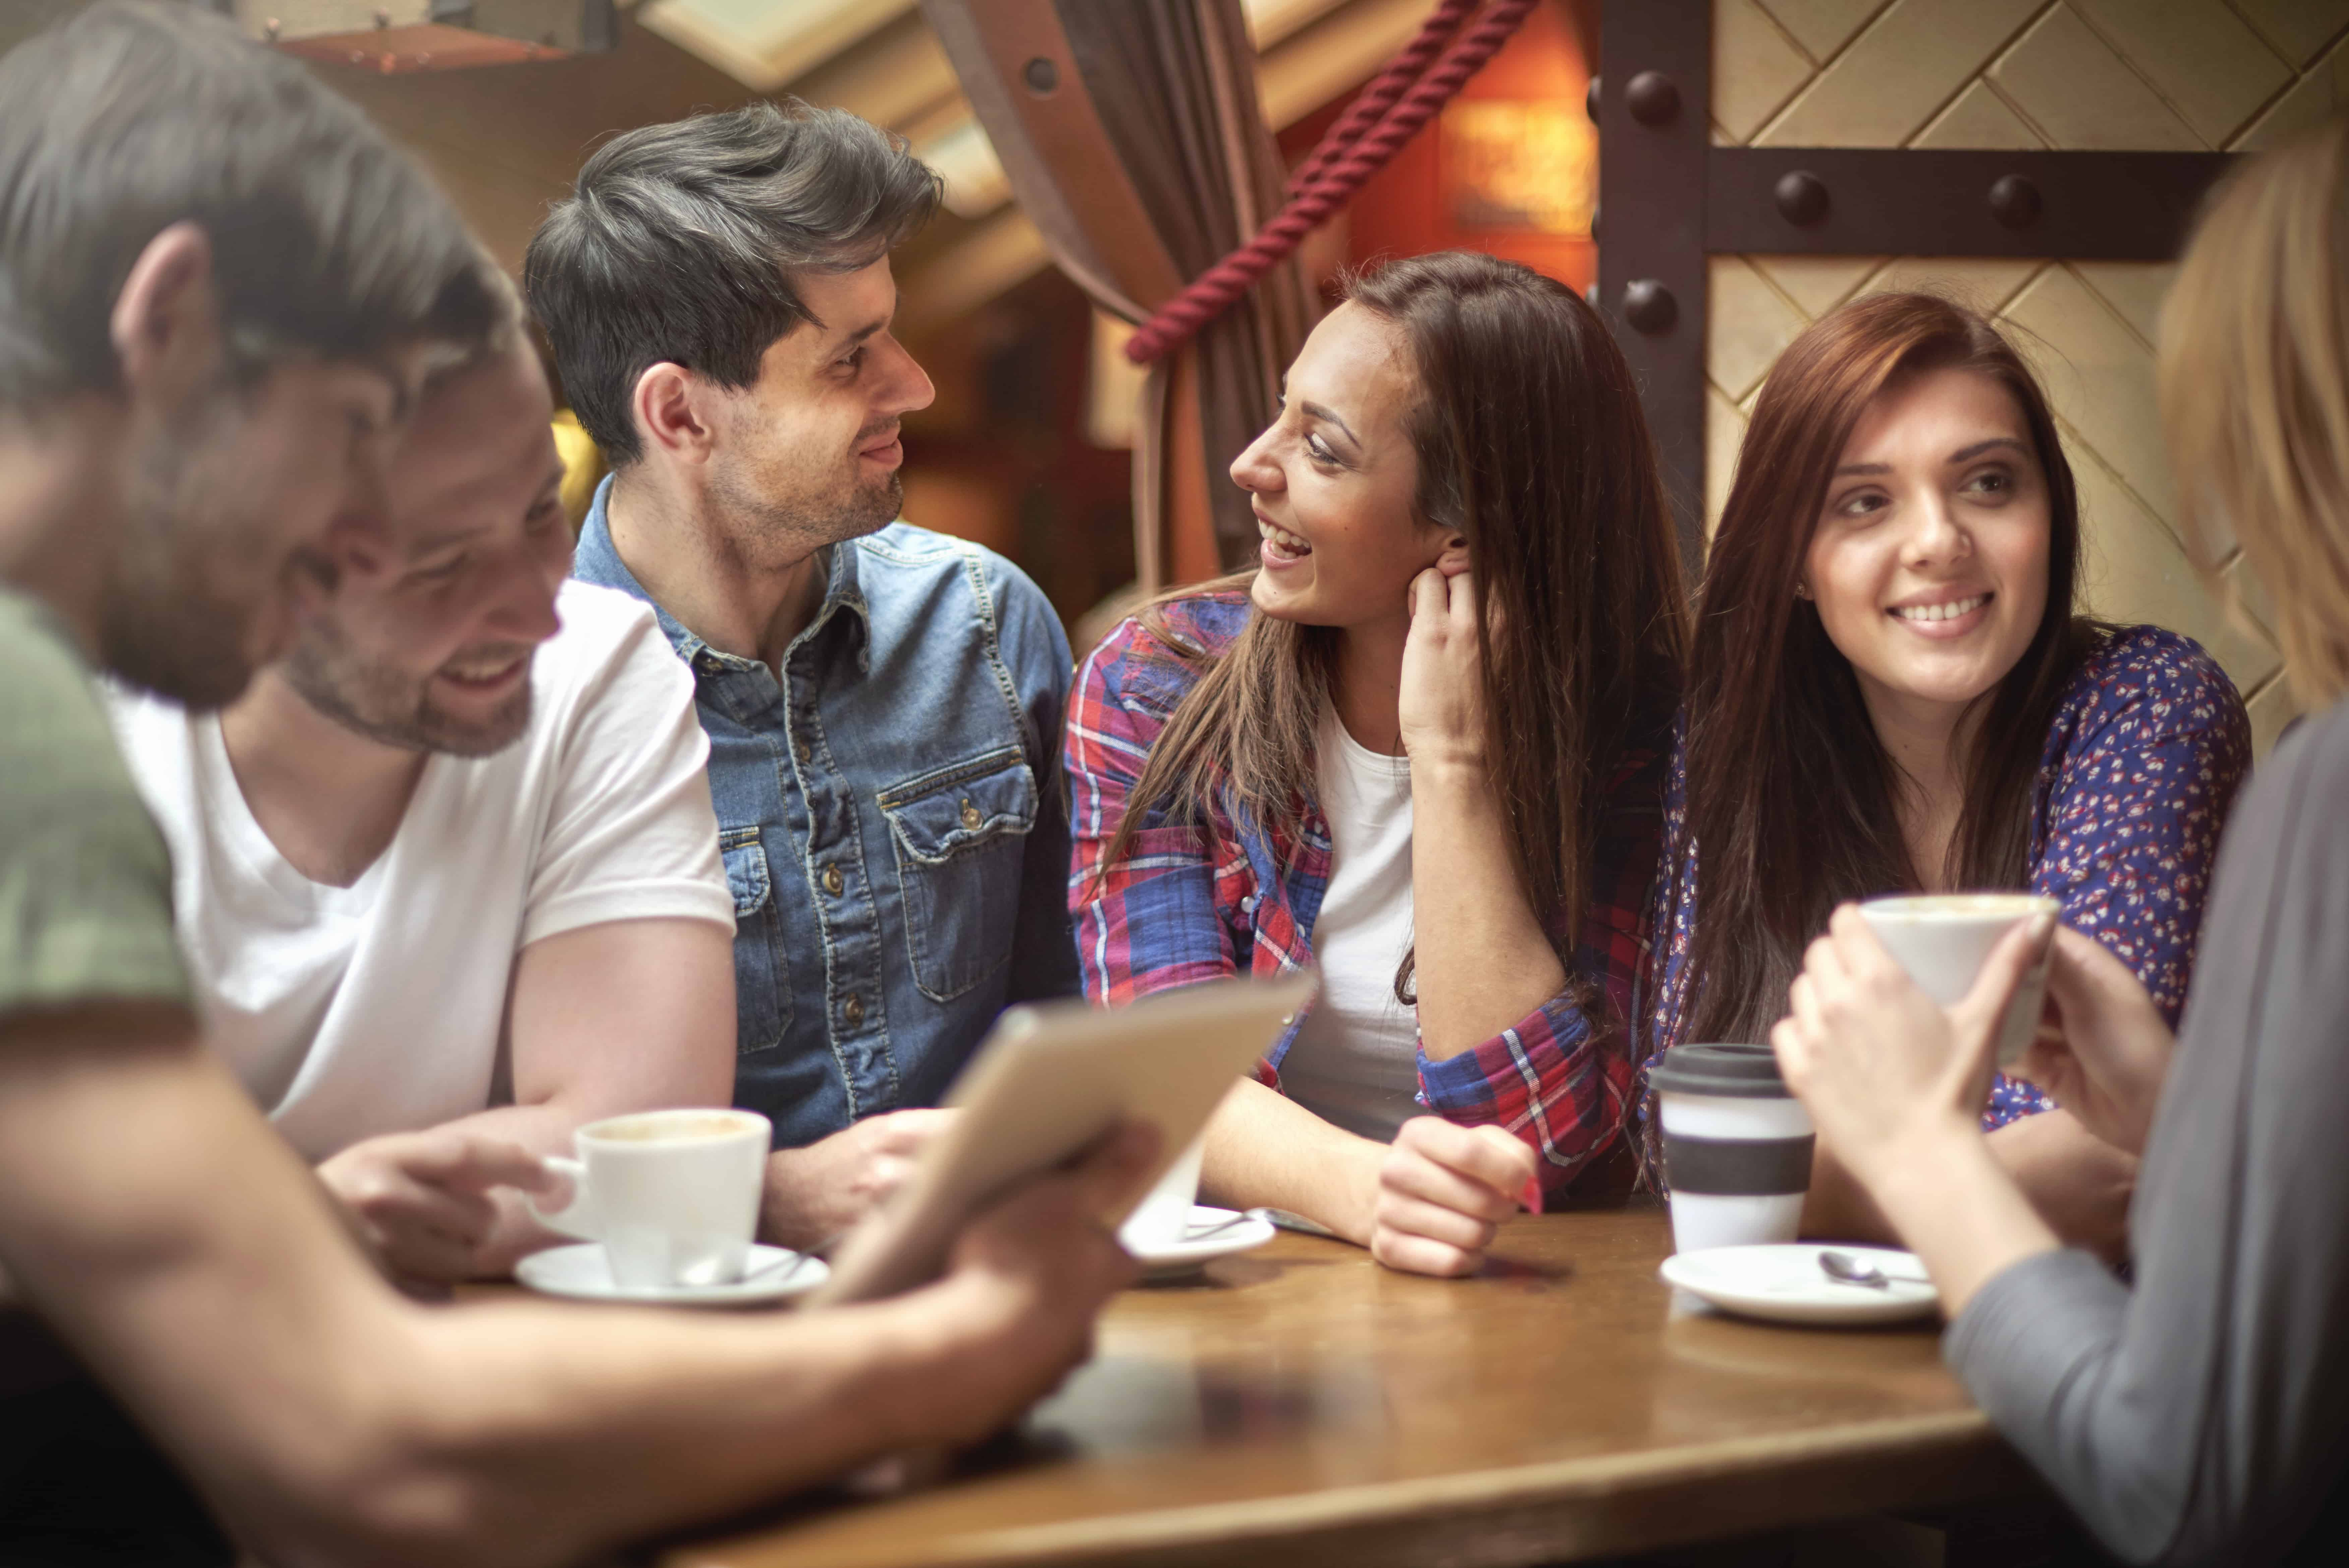 Most Small Groups Can Be… Mediocre. (10 Lessons From A Church Whose Groups Are Exploding)